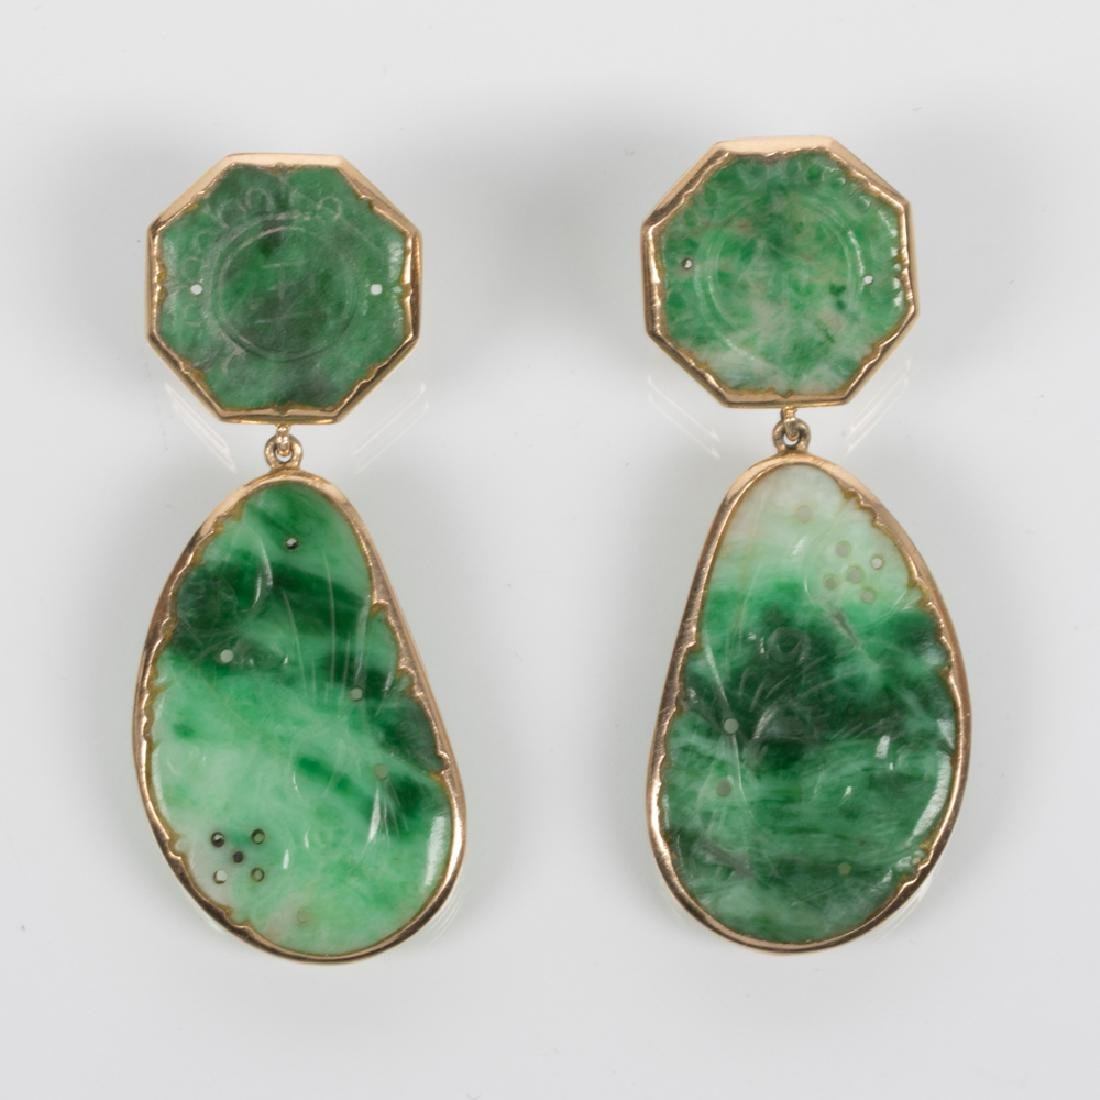 A Pair of 14kt. Yellow Gold, Carved Spinach and White